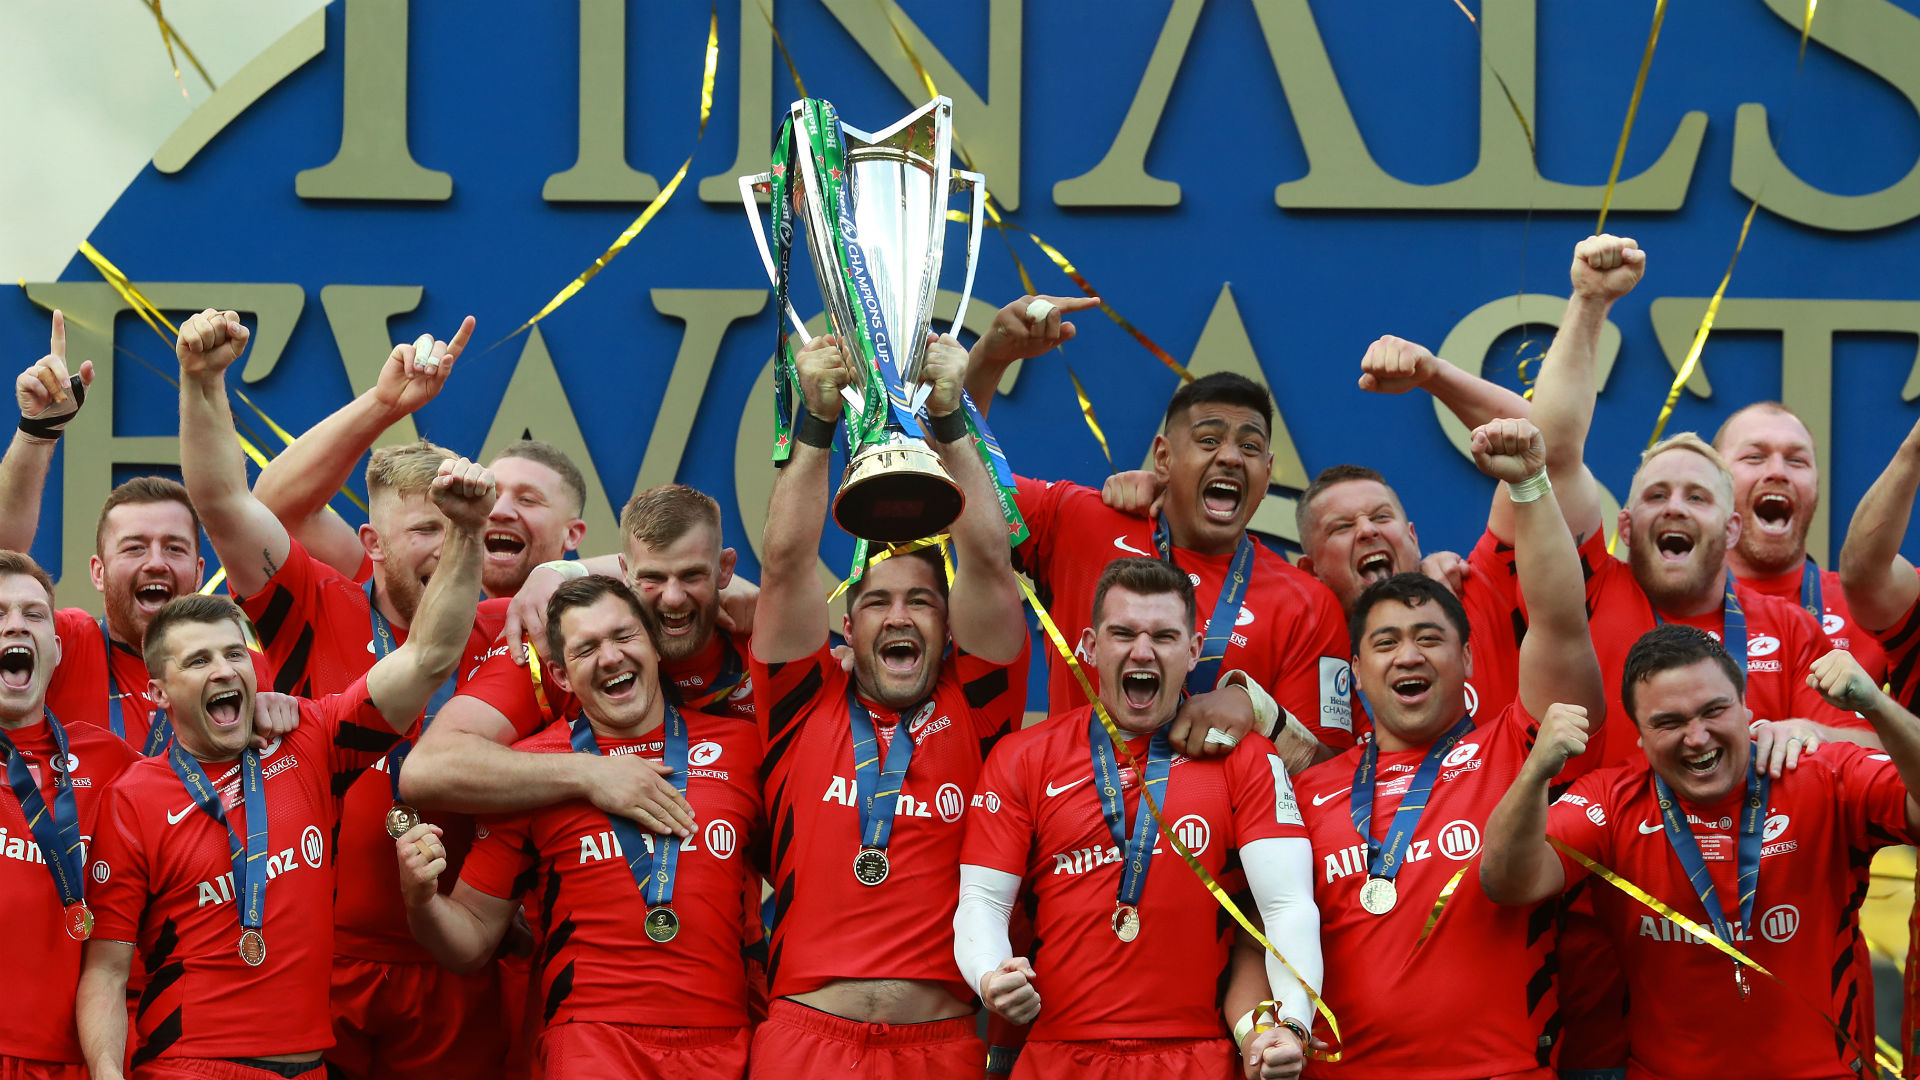 Saracens to face Munster, Racing and Ospreys in tough Champions Cup pool